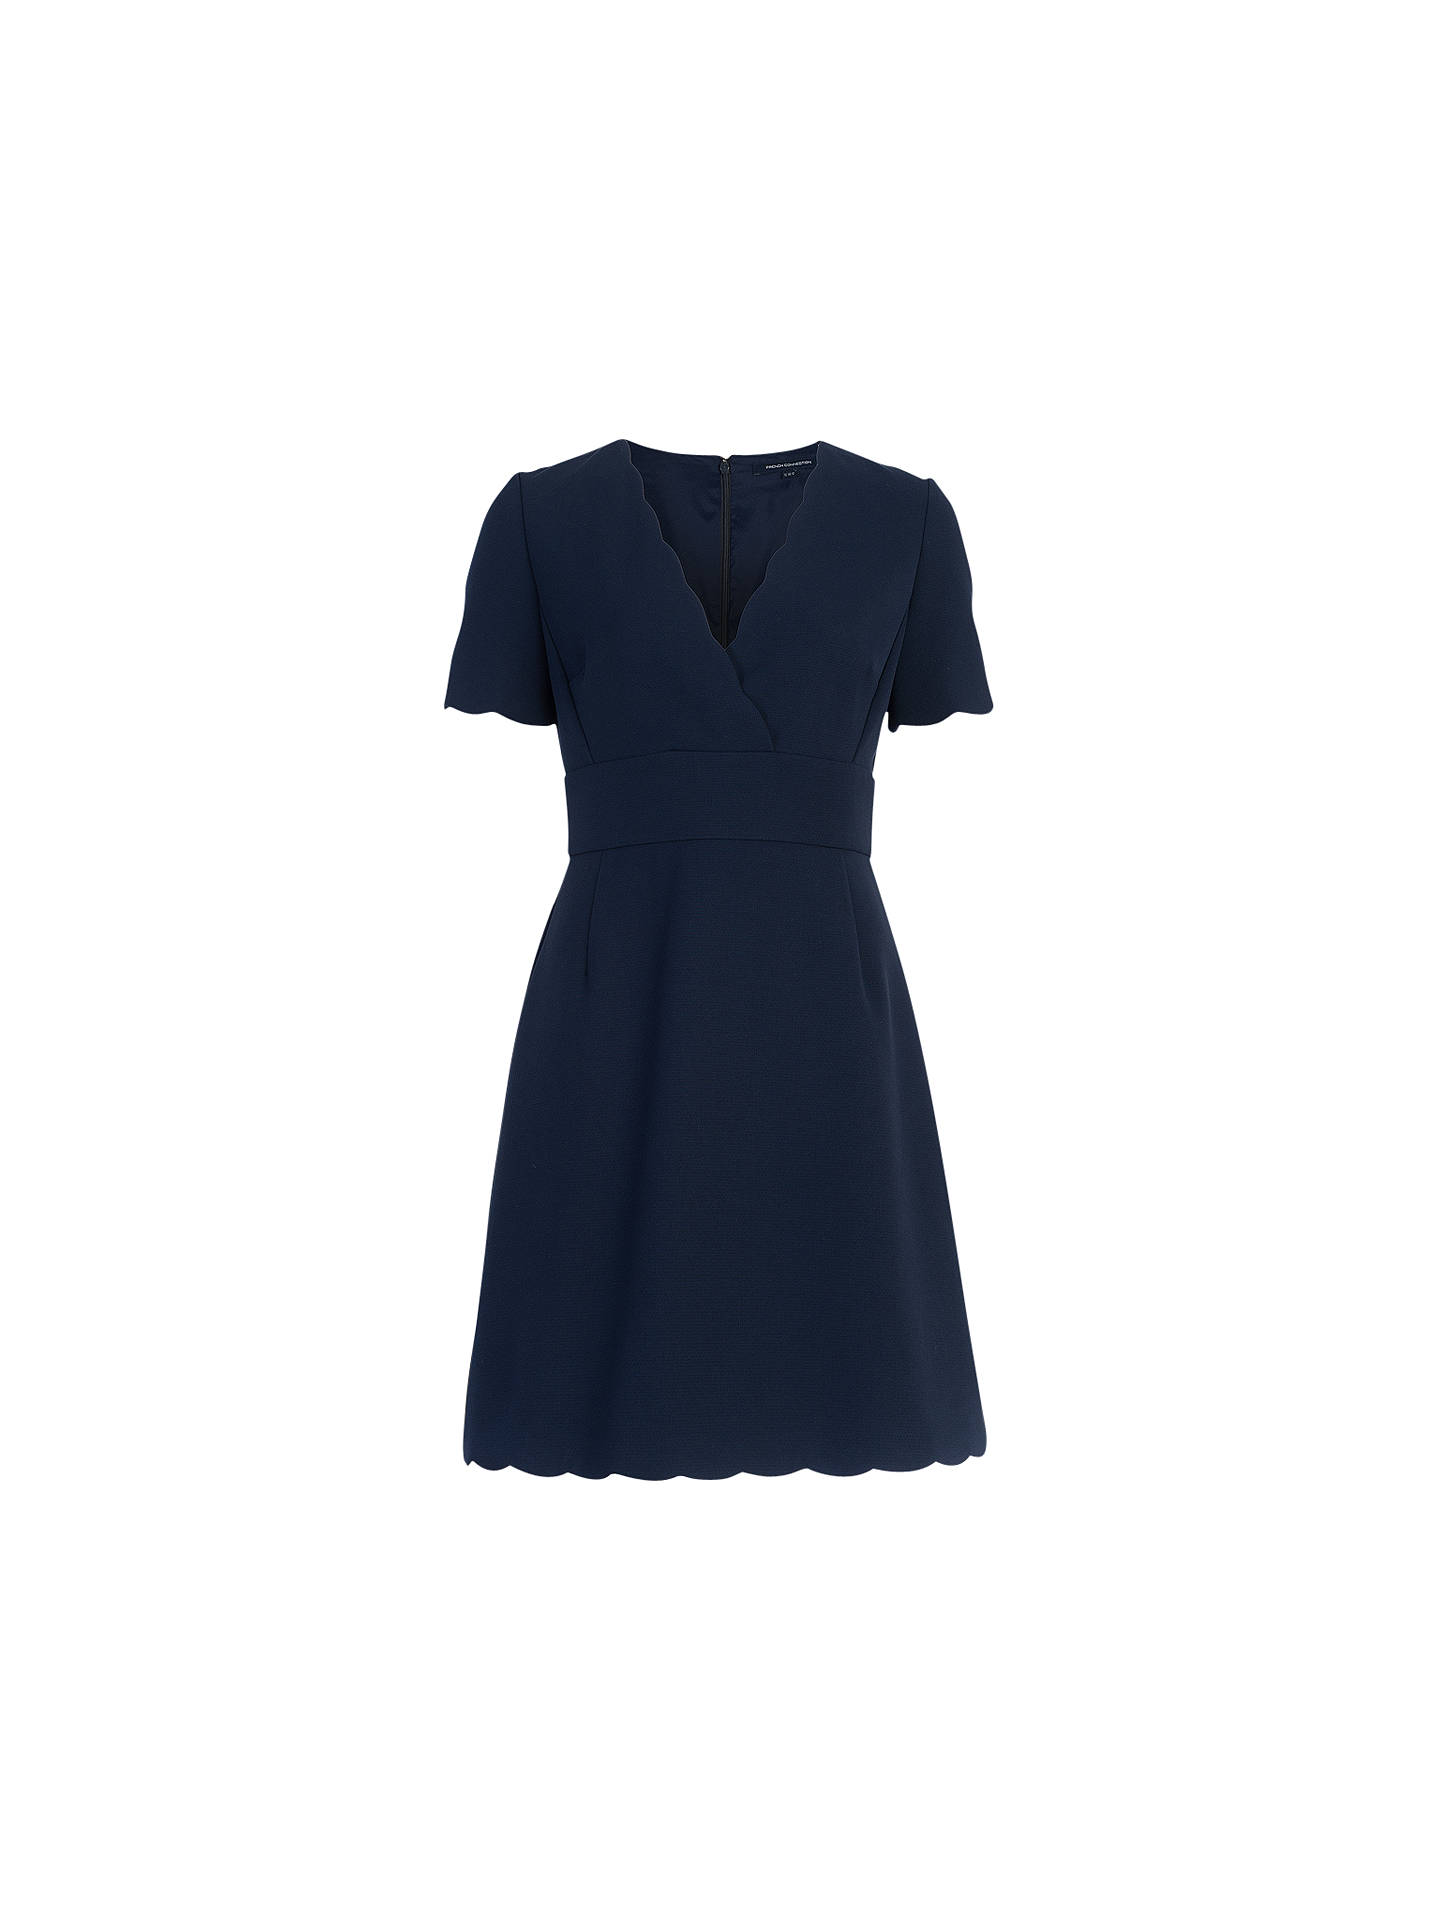 1eeb49eecb5b Buy French Connection Sundae Suiting Dress, Nocturnal, 6 Online at  johnlewis.com ...